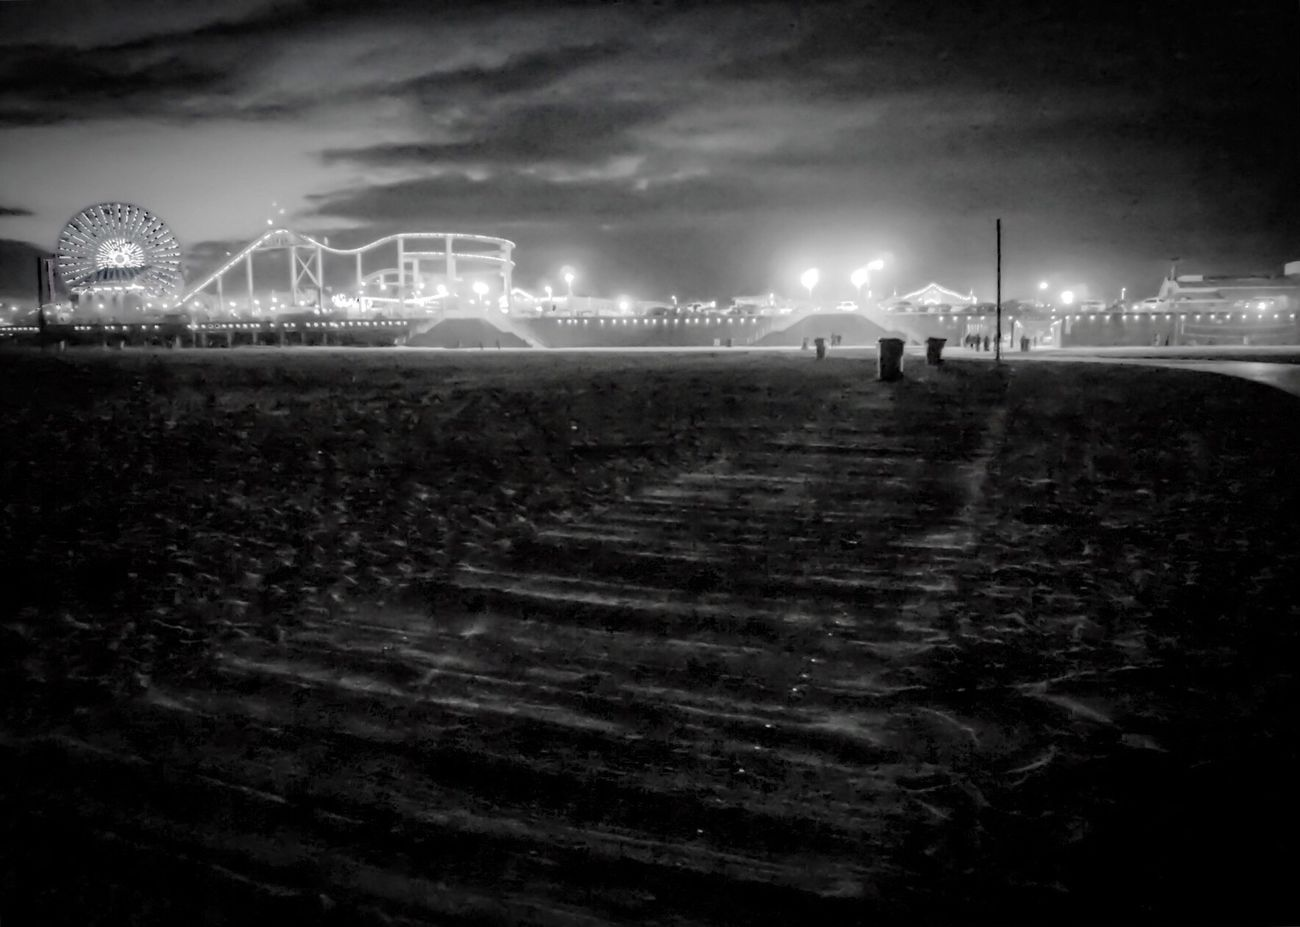 Sky Night Outdoors Cloud - Sky Santa Monica Pier Life Is A Beach Nature Beach Days Dusk Relaxing California Dreaming Eyeemphotography EyeEm Gallery To Live And Die In LA California Love Santa Monica Enjoying Life Light And Shadow Illuminated Black & White Black And White SundayFunday Bnw Black And White Photography EyeEm Bnw